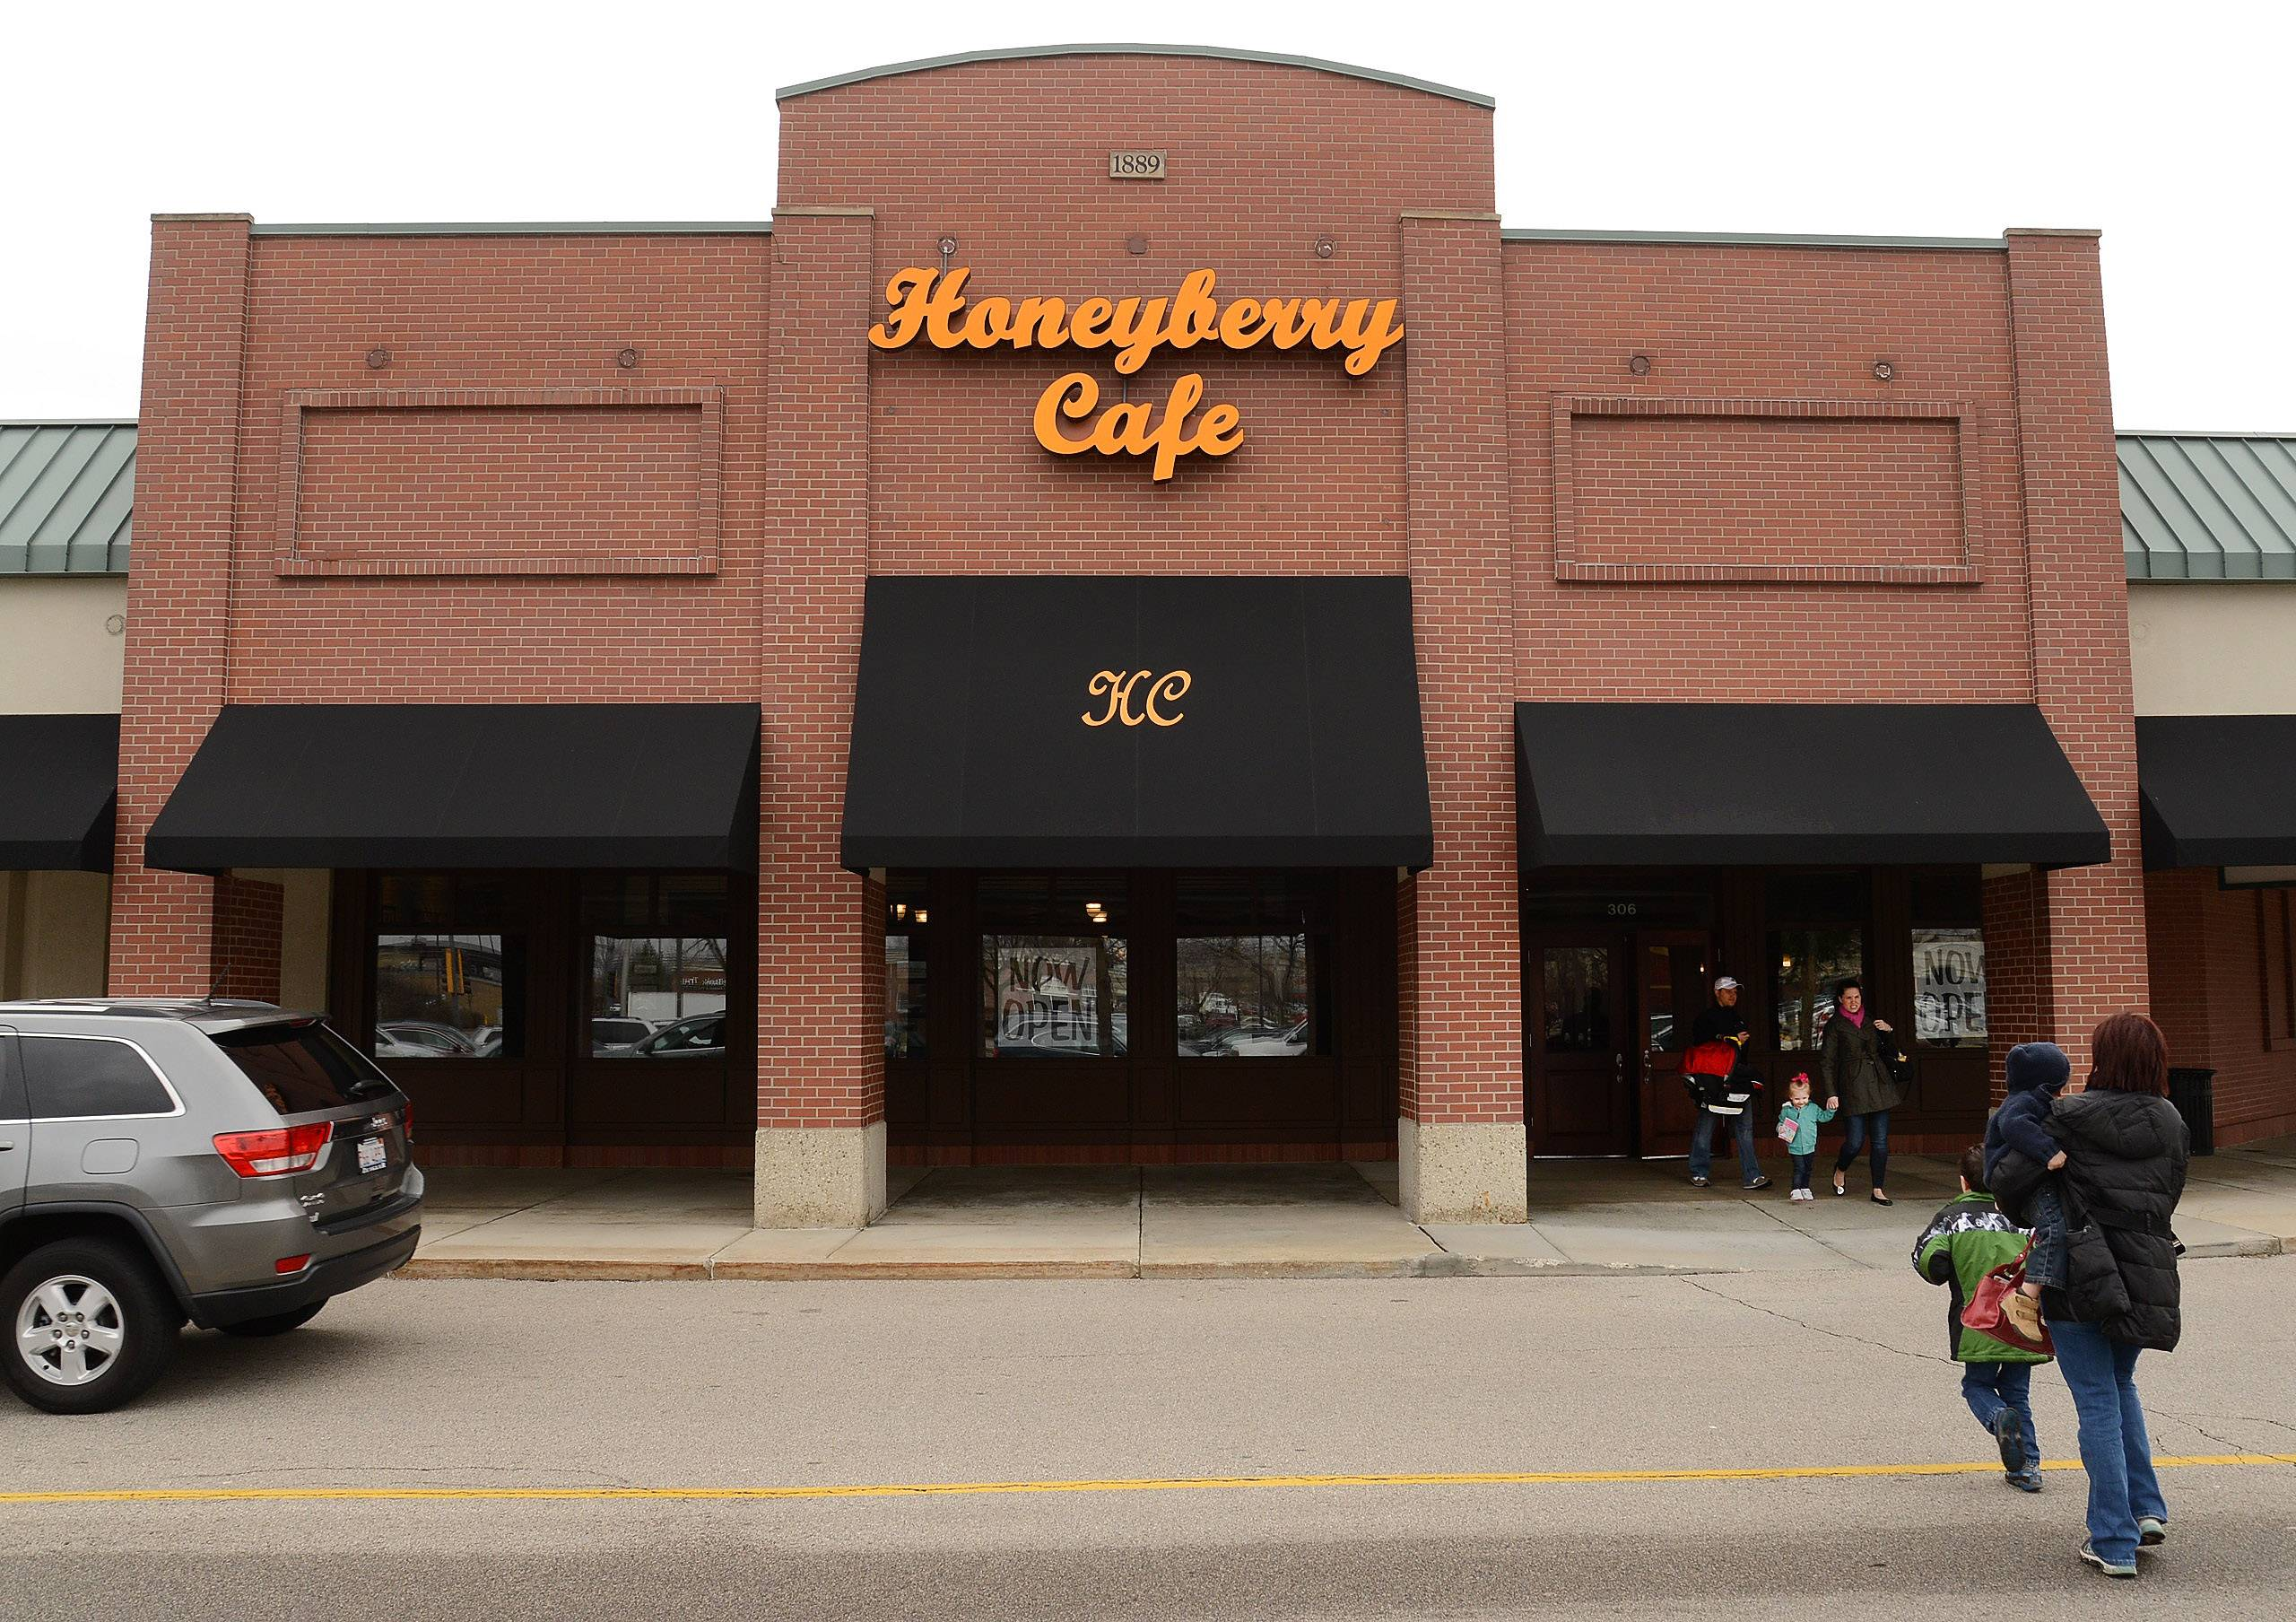 Honeyberry Cafe closed earlier this summer in Arlington Heights, but a new breakfast restaurant called Gail's Carriage Place already is open in its place.